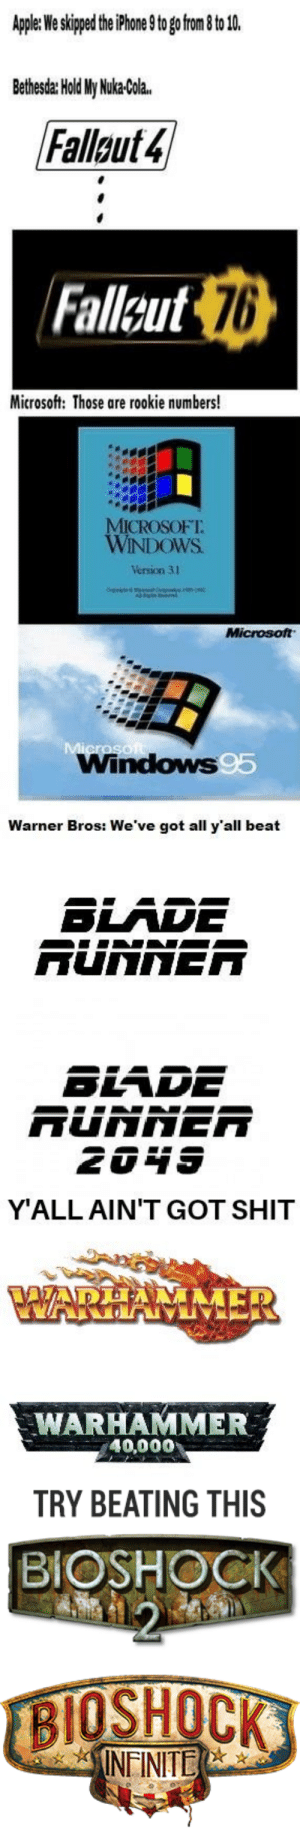 Casuals by DeathPro FOLLOW HERE 4 MORE MEMES.: Apple: We skipped the iPhone 9 to go from 8 to 10.  Bethesda: Hold My Nuka-Cola.  Fallout 4  Fallsut 76  Microsoft: Those are rookie numbers!  MICROSOFT  WINDOWS  Version 31  Microsoft  Microso  Windows95  Warner Bros: We've got all y'all beat  BLADE  RUNNER  BLADE  RUNNER  2049  Y'ALL AIN'T GOT SHIT  AADEA  VWARHAMMER  WARHAMMER  40,000  TRY BEATING THIS  BIOSHOCK  12  BIOSHOCK  INEINITE Casuals by DeathPro FOLLOW HERE 4 MORE MEMES.